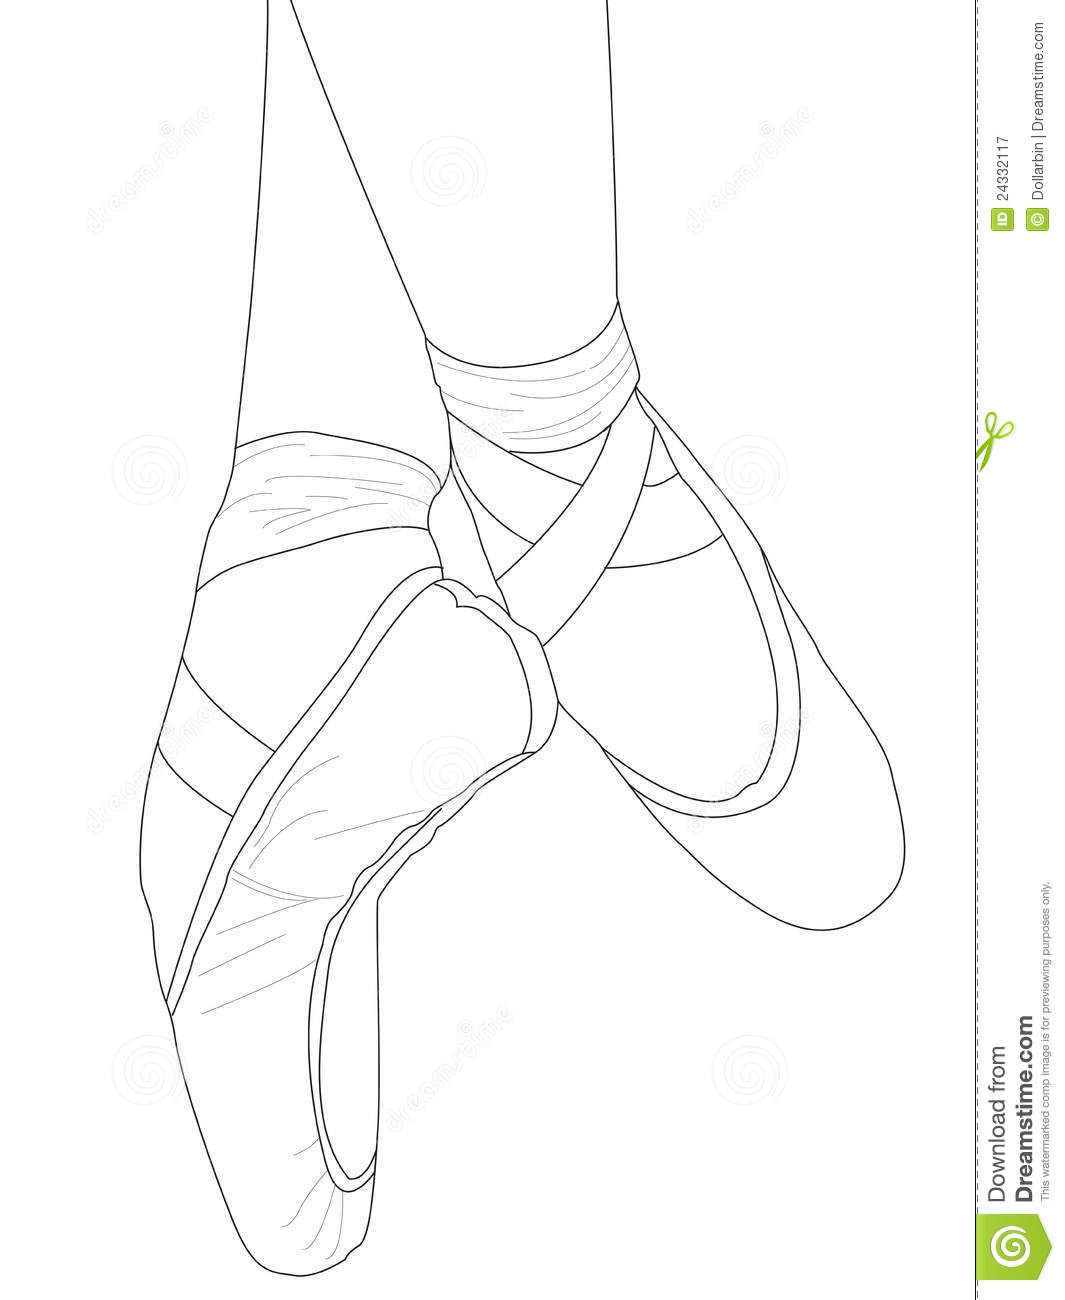 How To Color Pointe Shoes Black